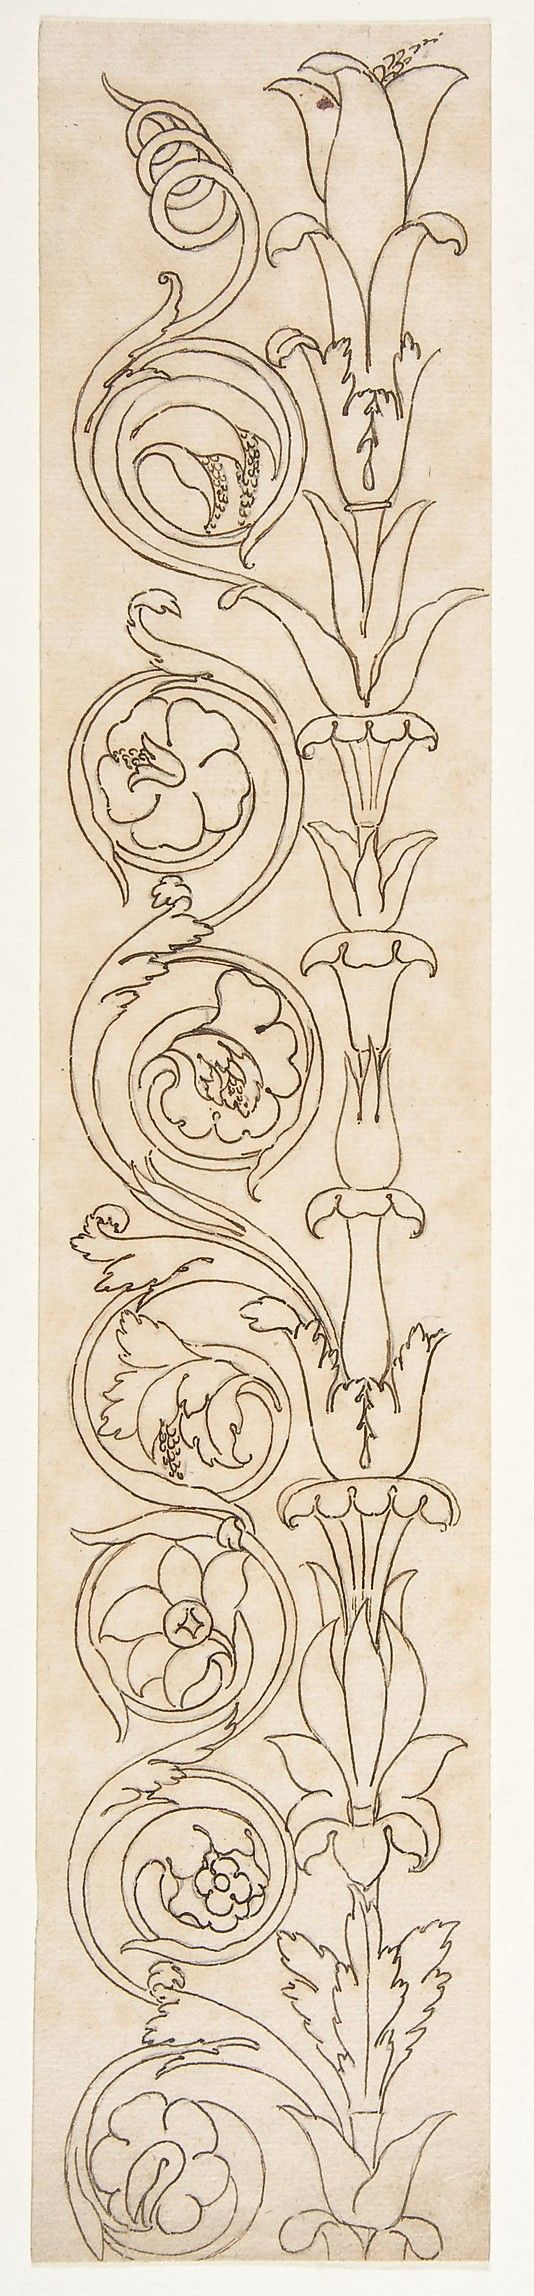 ornamental drawings  recto  blank  verso